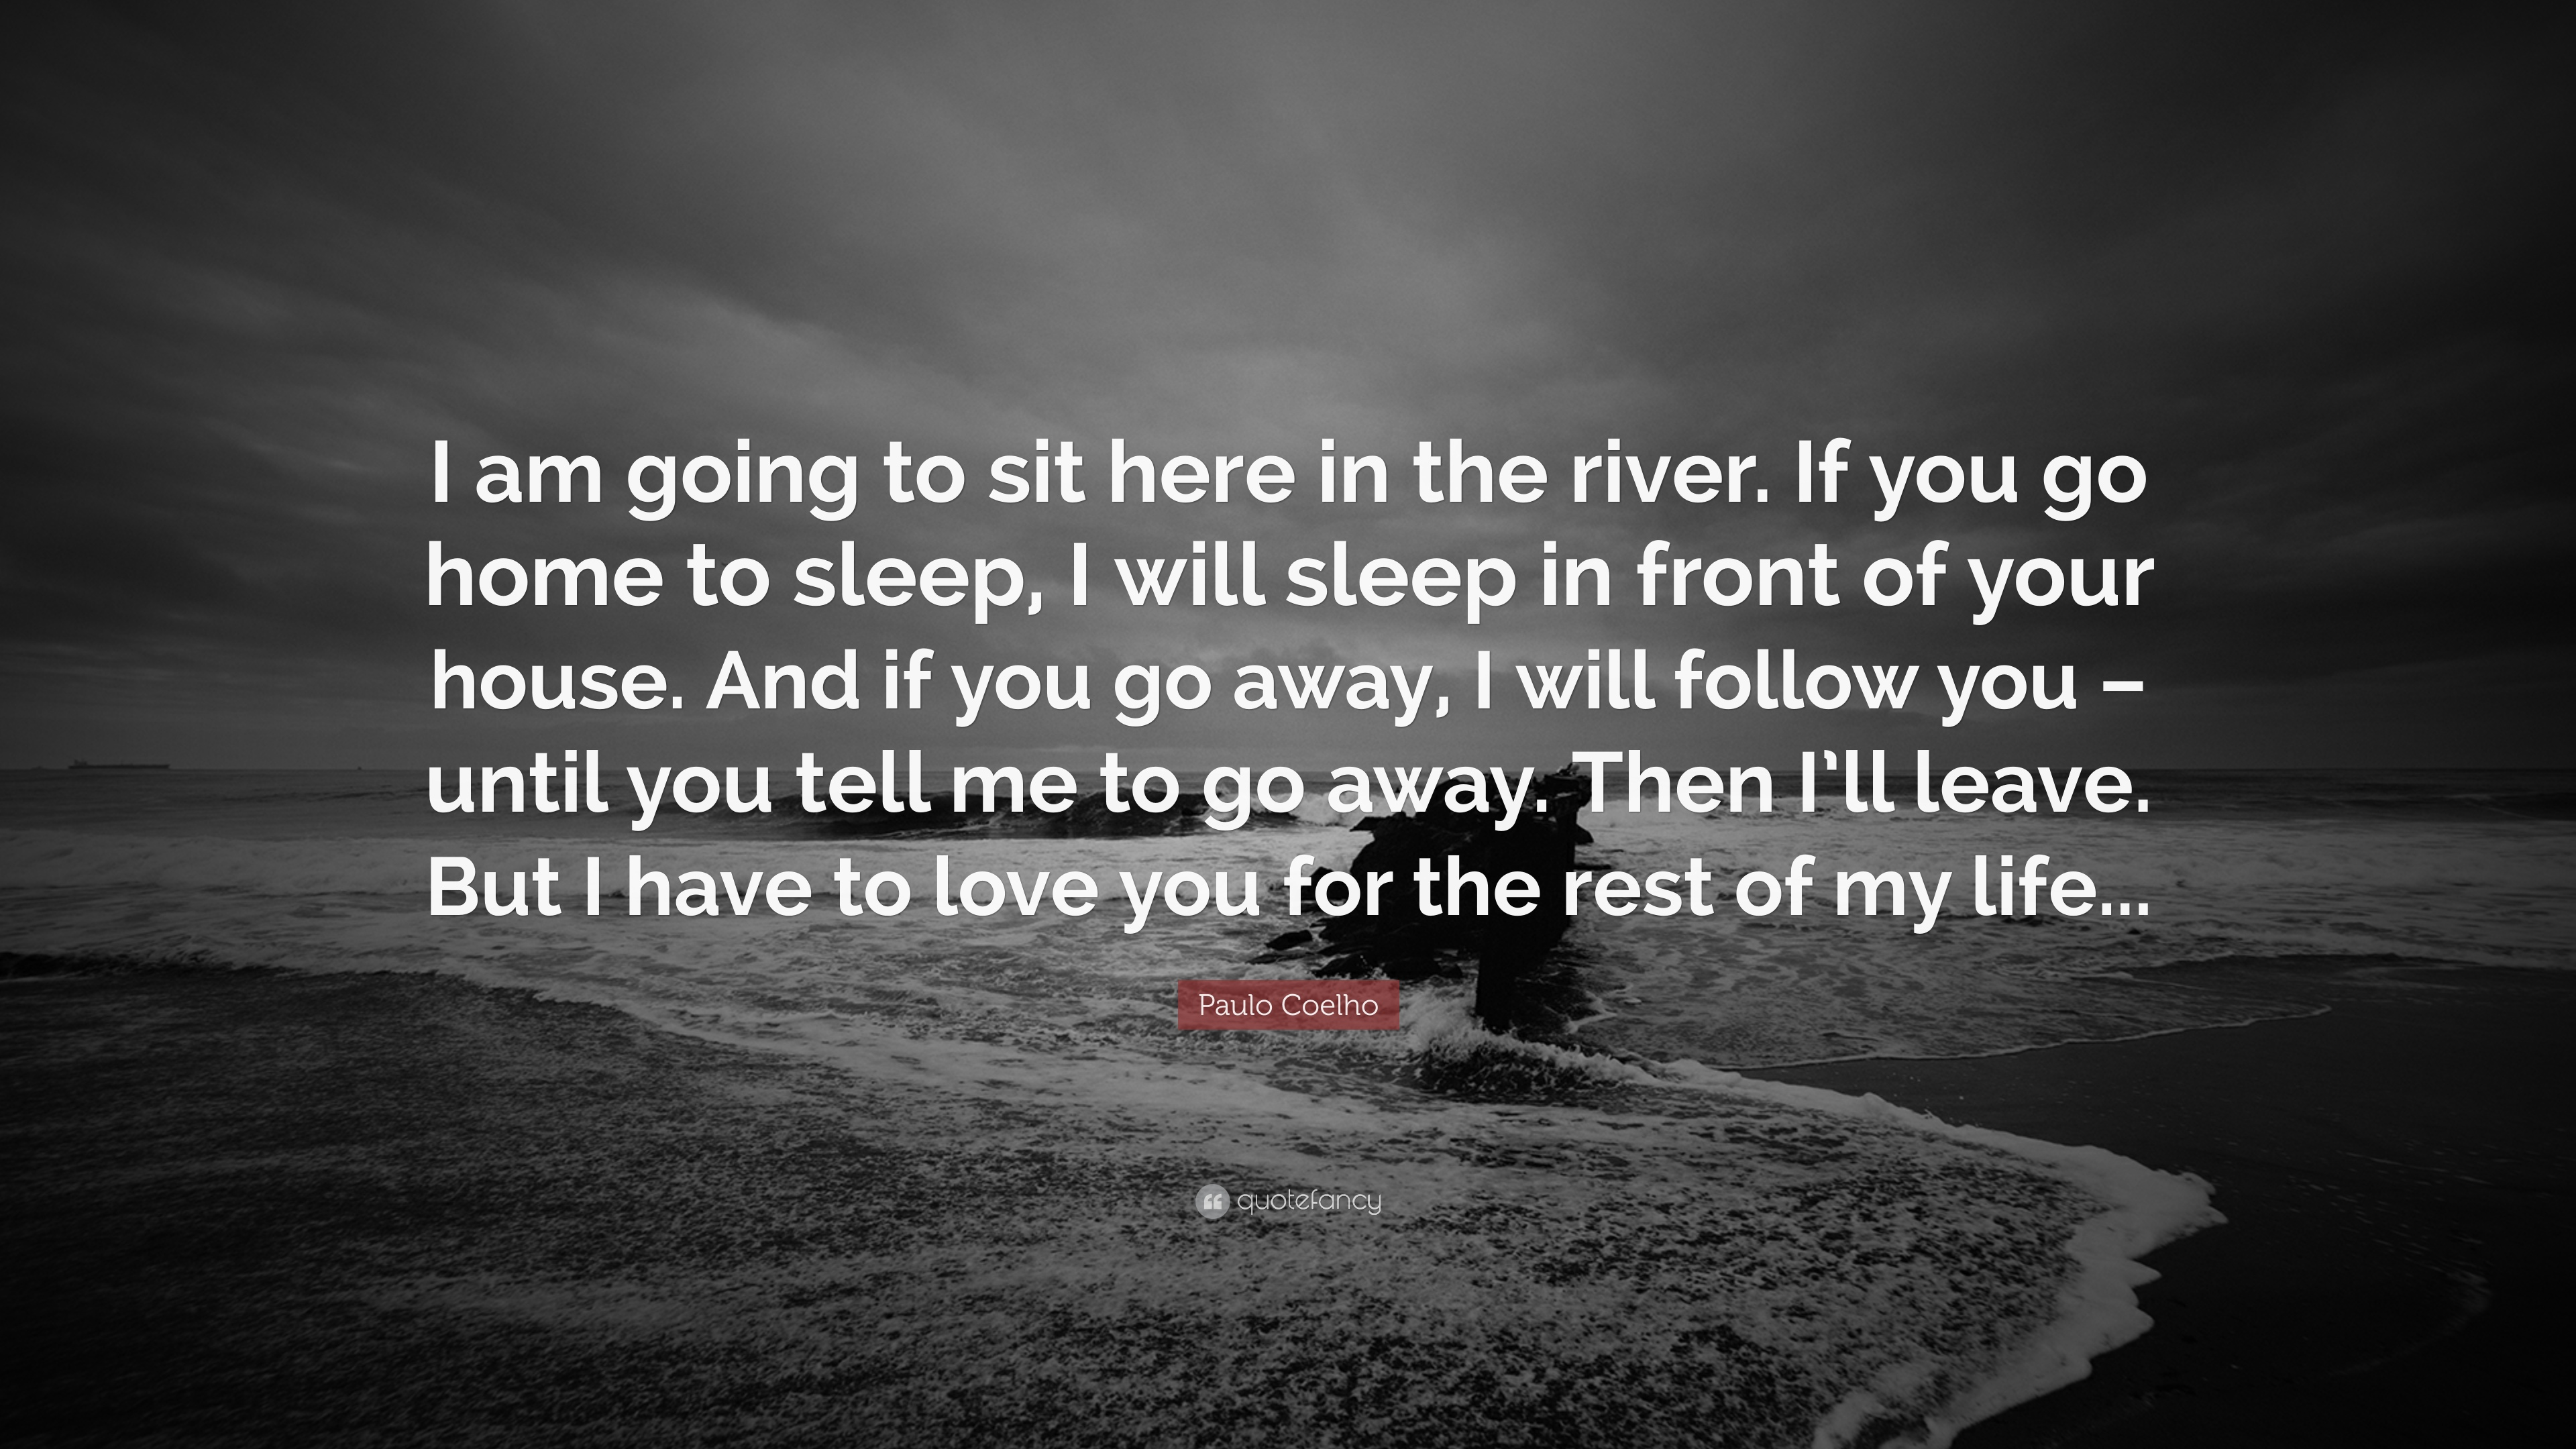 Paulo Coelho Quote I Am Going To Sit Here In The River If You Go